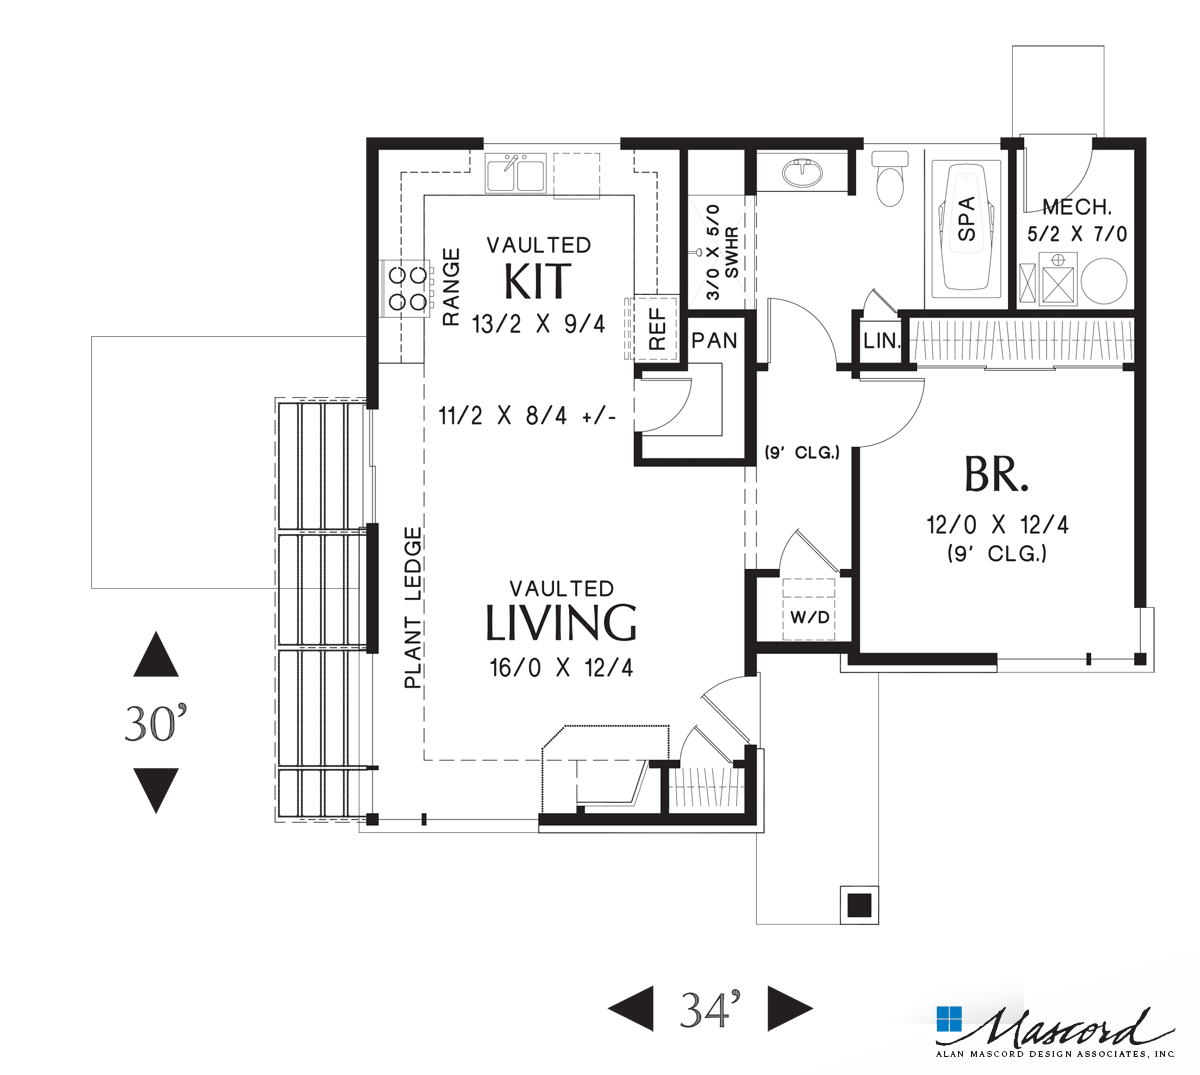 Main Floor Plan Of Mascord Plan 1166 The Dunland Single Bedroom Compact Contemporary Home Ideal For Bea Modern House Plans Coastal House Plans House Plans